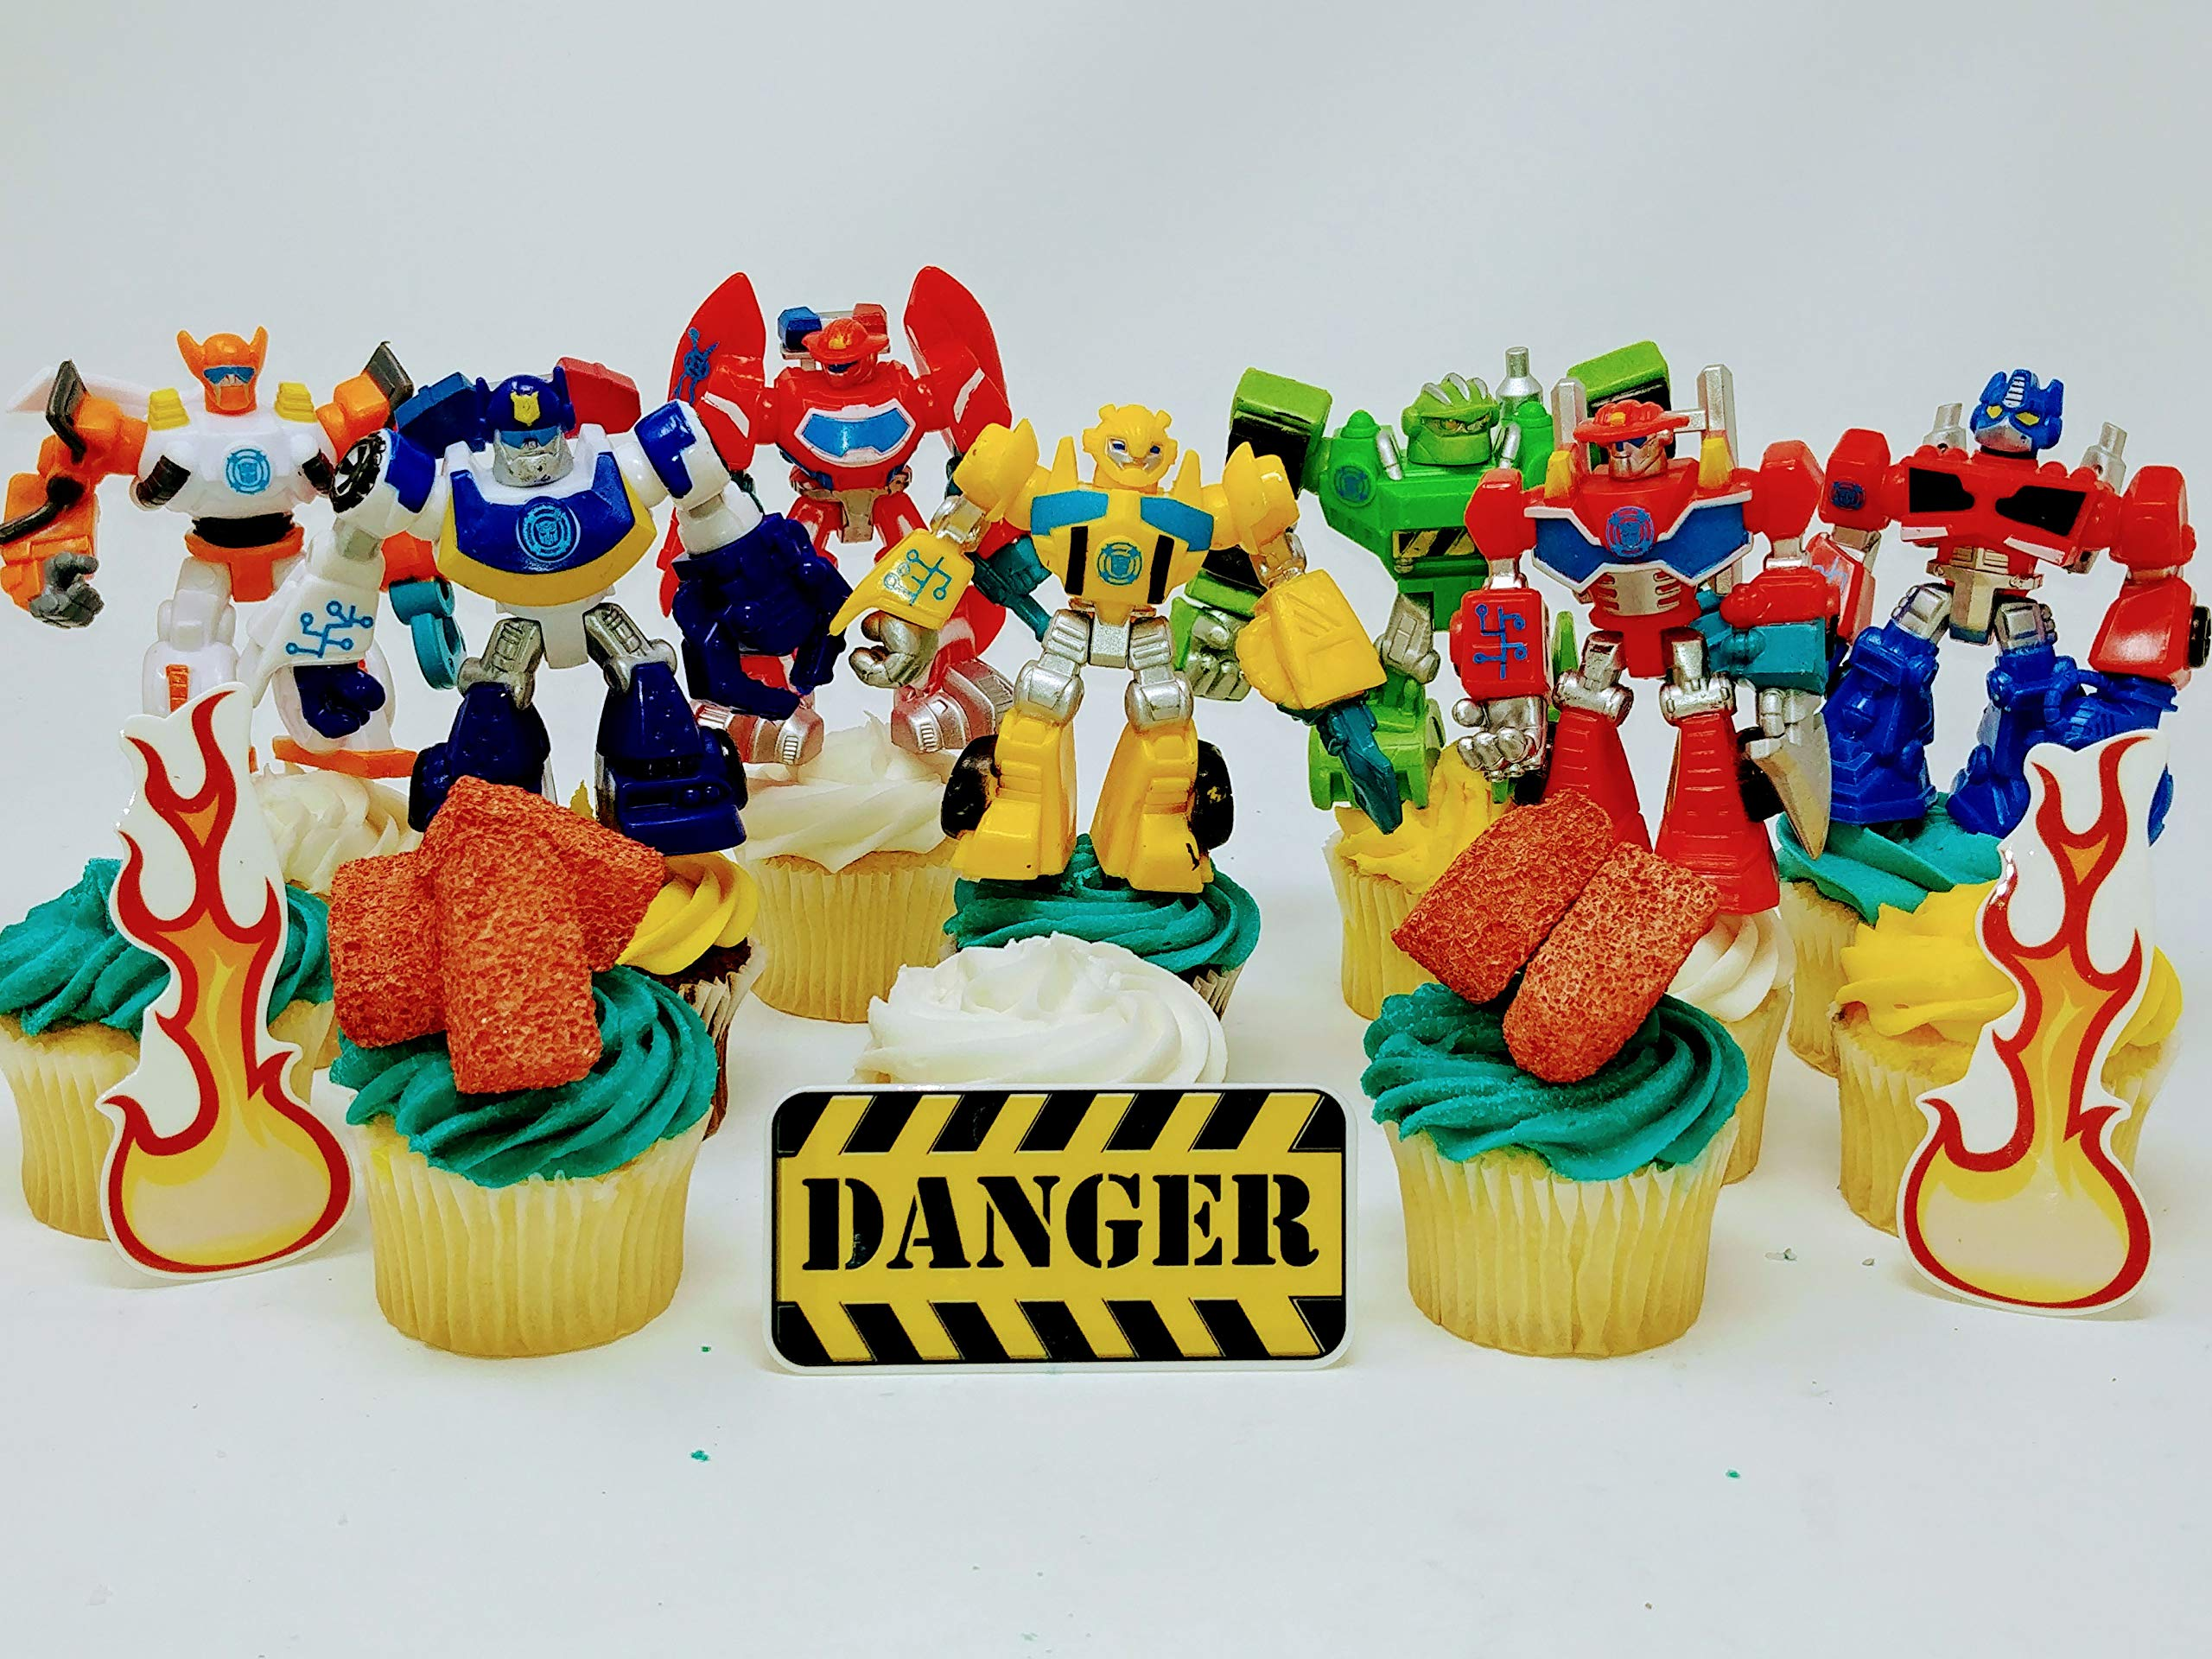 TRANSFORMER Birthday Cupcake Topper Set Featuring RANDOM Transformer Figures and Accessories by Cupcake Topper